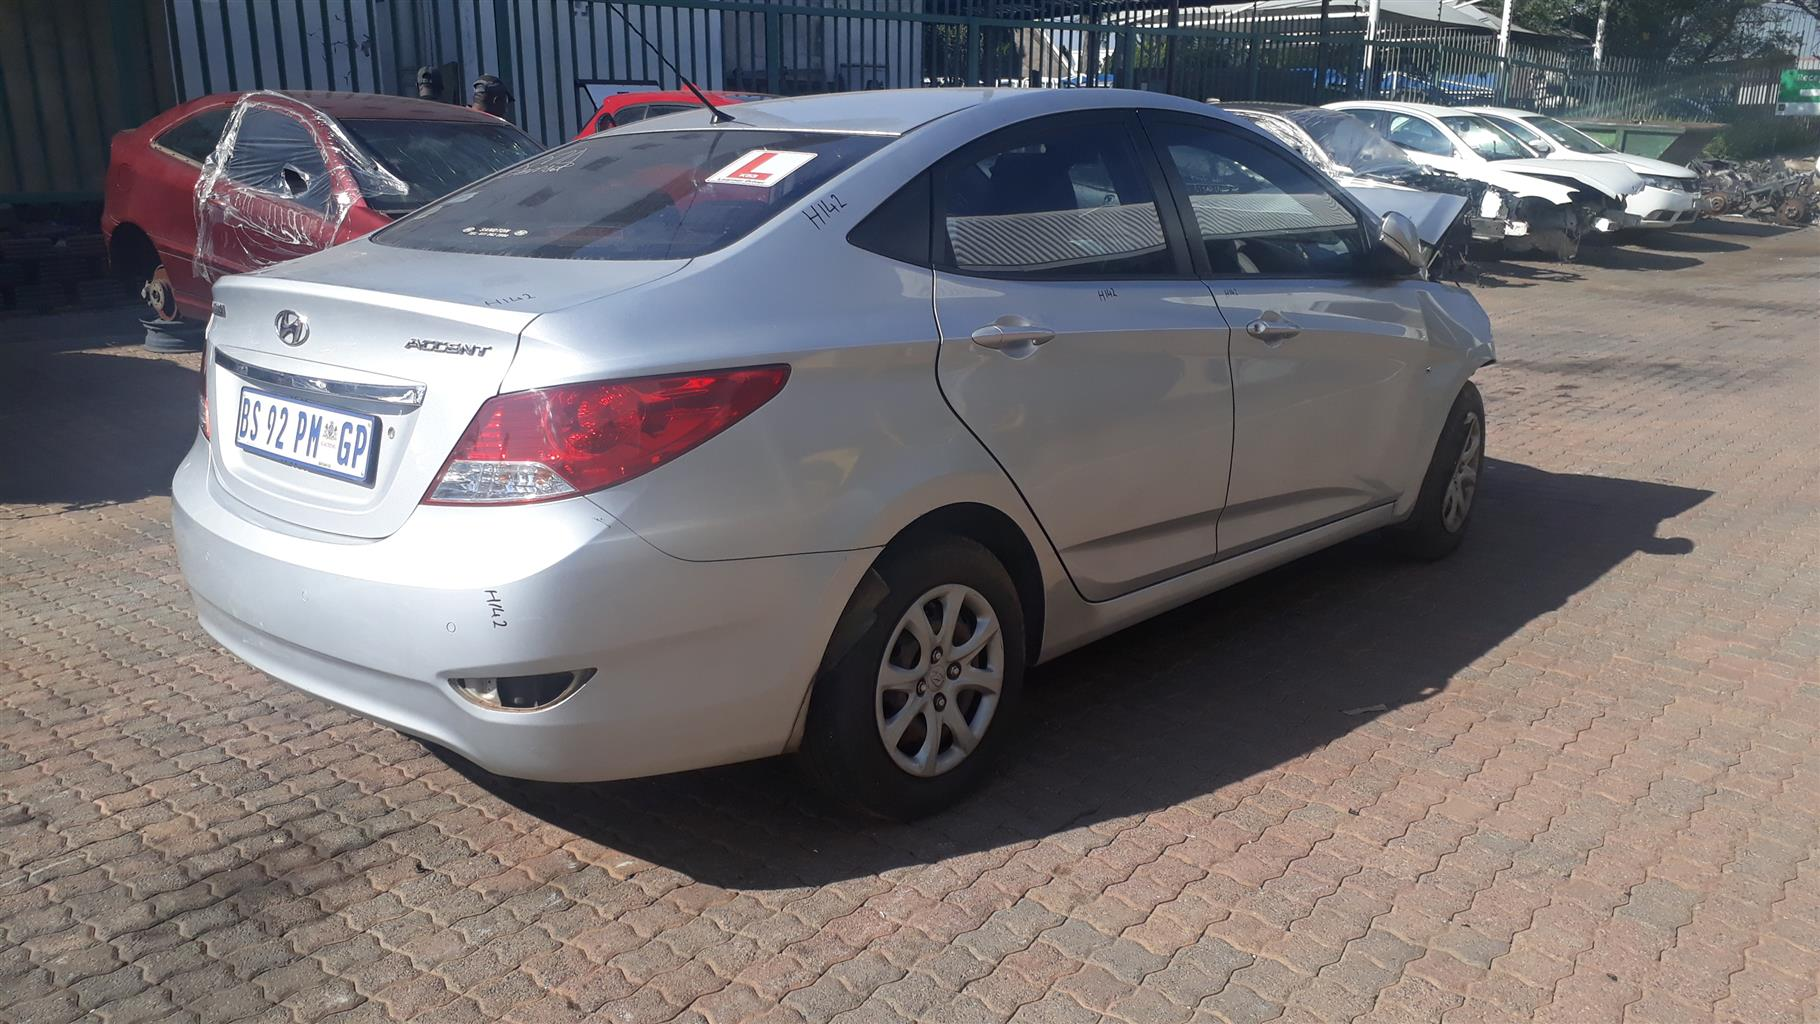 Accent Sedan Spare Parts For Sale